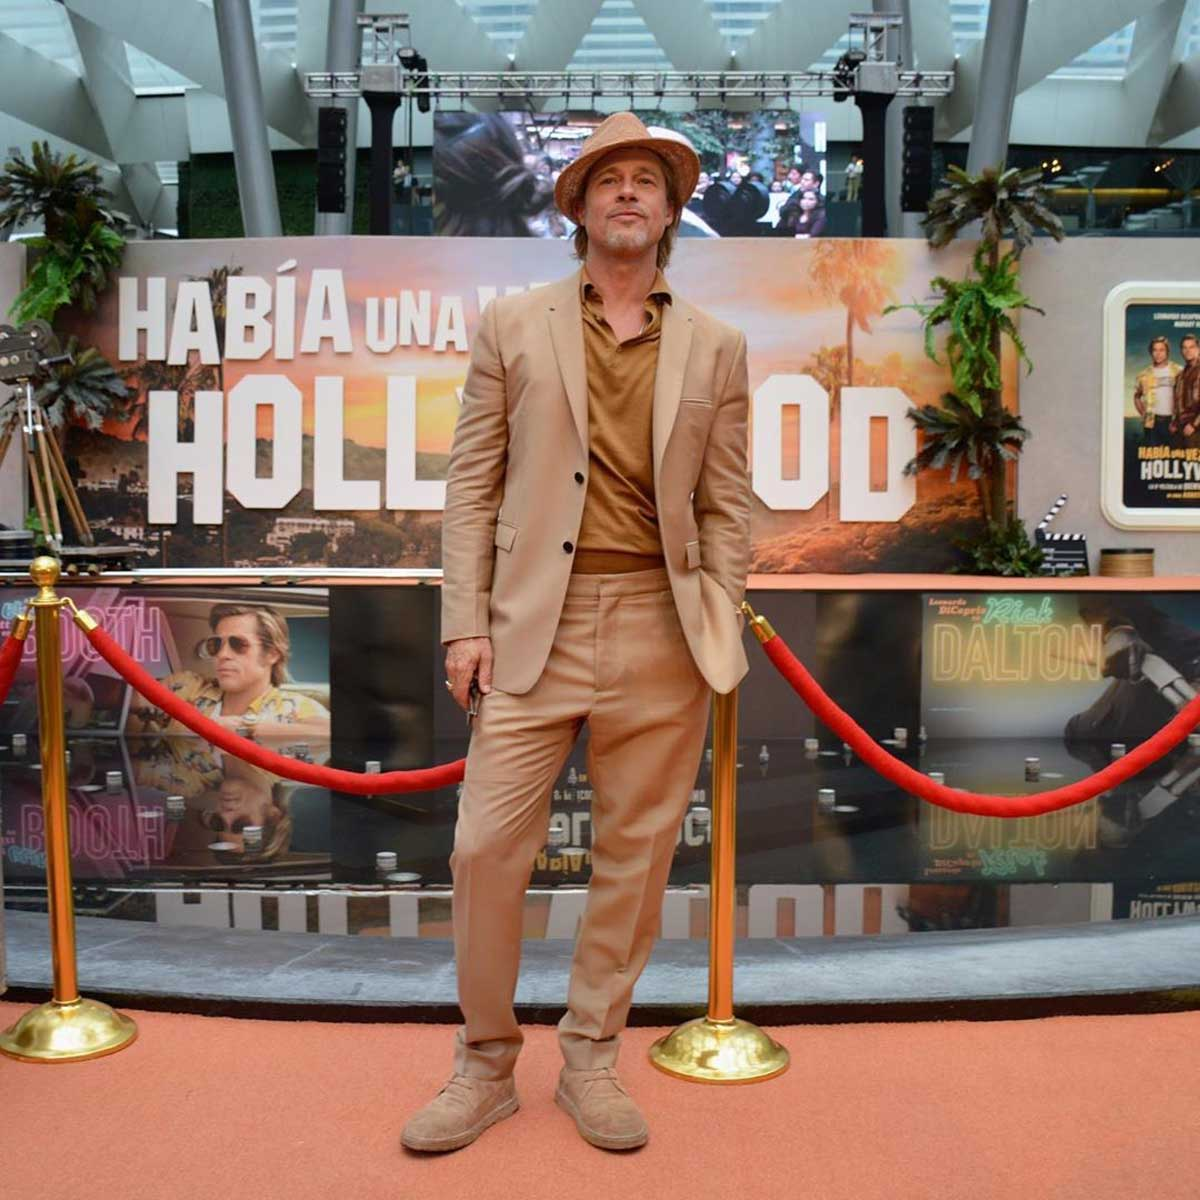 Brad Pitt Once Upon a Time in Hollywood Premiere in Mexico